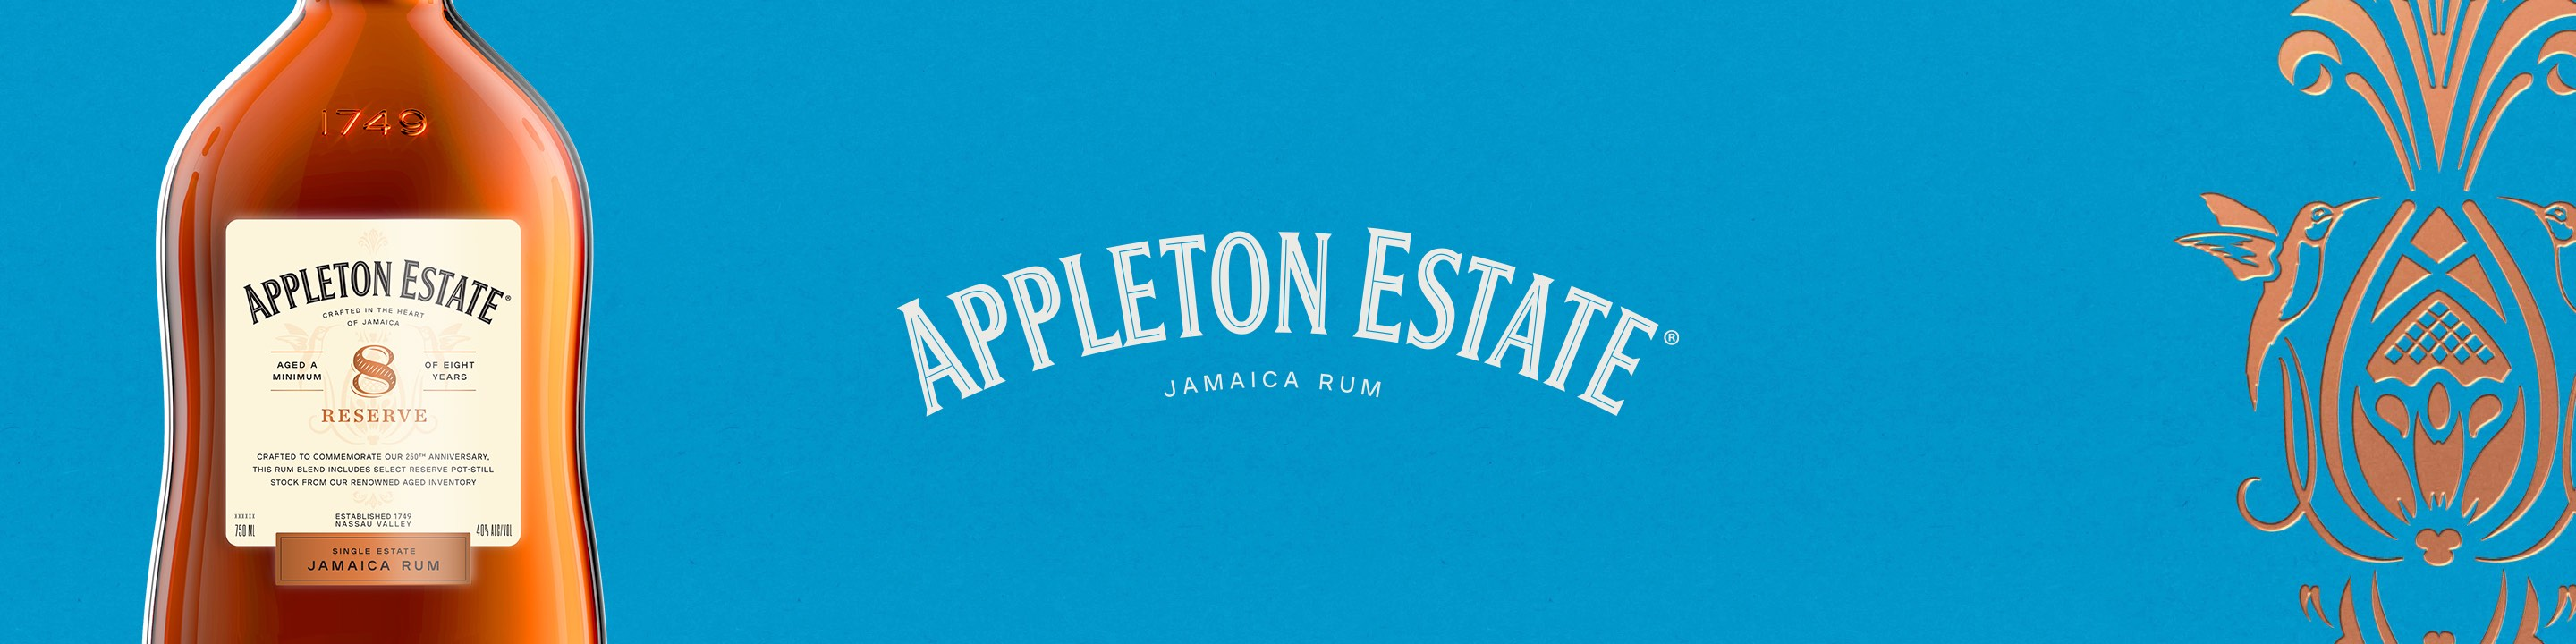 The Appleton Estate, a glorious and fertile land located in the heart of Jamaica, is the birthplace of all Appleton Estate Jamaica Rum, and the employees at Appleton Estate have been crafting this rum with the warmth, passion, and unique sprit of Jamaica for over 265 years.     The Appleton Estate is nestled in the Nassau Valley which is located in Jamaica's famous Cockpit Country – a unique and beautiful rugged terrain.  The Nassau Valley's fertile soil, afternoon rain showers, and warm sunshine present the optimum conditions for growing sugar cane.      At the Appleton Estate the production of rum is a craft. Every step in the process is carefully controlled, from the selection of the varieties of sugar cane that are grown on the Estate, to the natural culture of yeast and the crystal clear water from the Estate's spring that is used in fermentation, to our unique distillation and blending methods.     The beautifully complex and aromatic Appleton Estate rums are of a unique style, produced only in Jamaica, and only at the Appleton Estate. All Appleton Estate rum is produced on a single estate in a small circumscribed geographic area, which makes it one of the few rums in the world to claim a terroir (the sum of the effects that the local environment has on the production of the product), and the only rum in the world that has a terroir as unique as the Nassau Valley.  Buy Appleton Estate Rum online now from nearby liquor stores via Minibar Delivery.